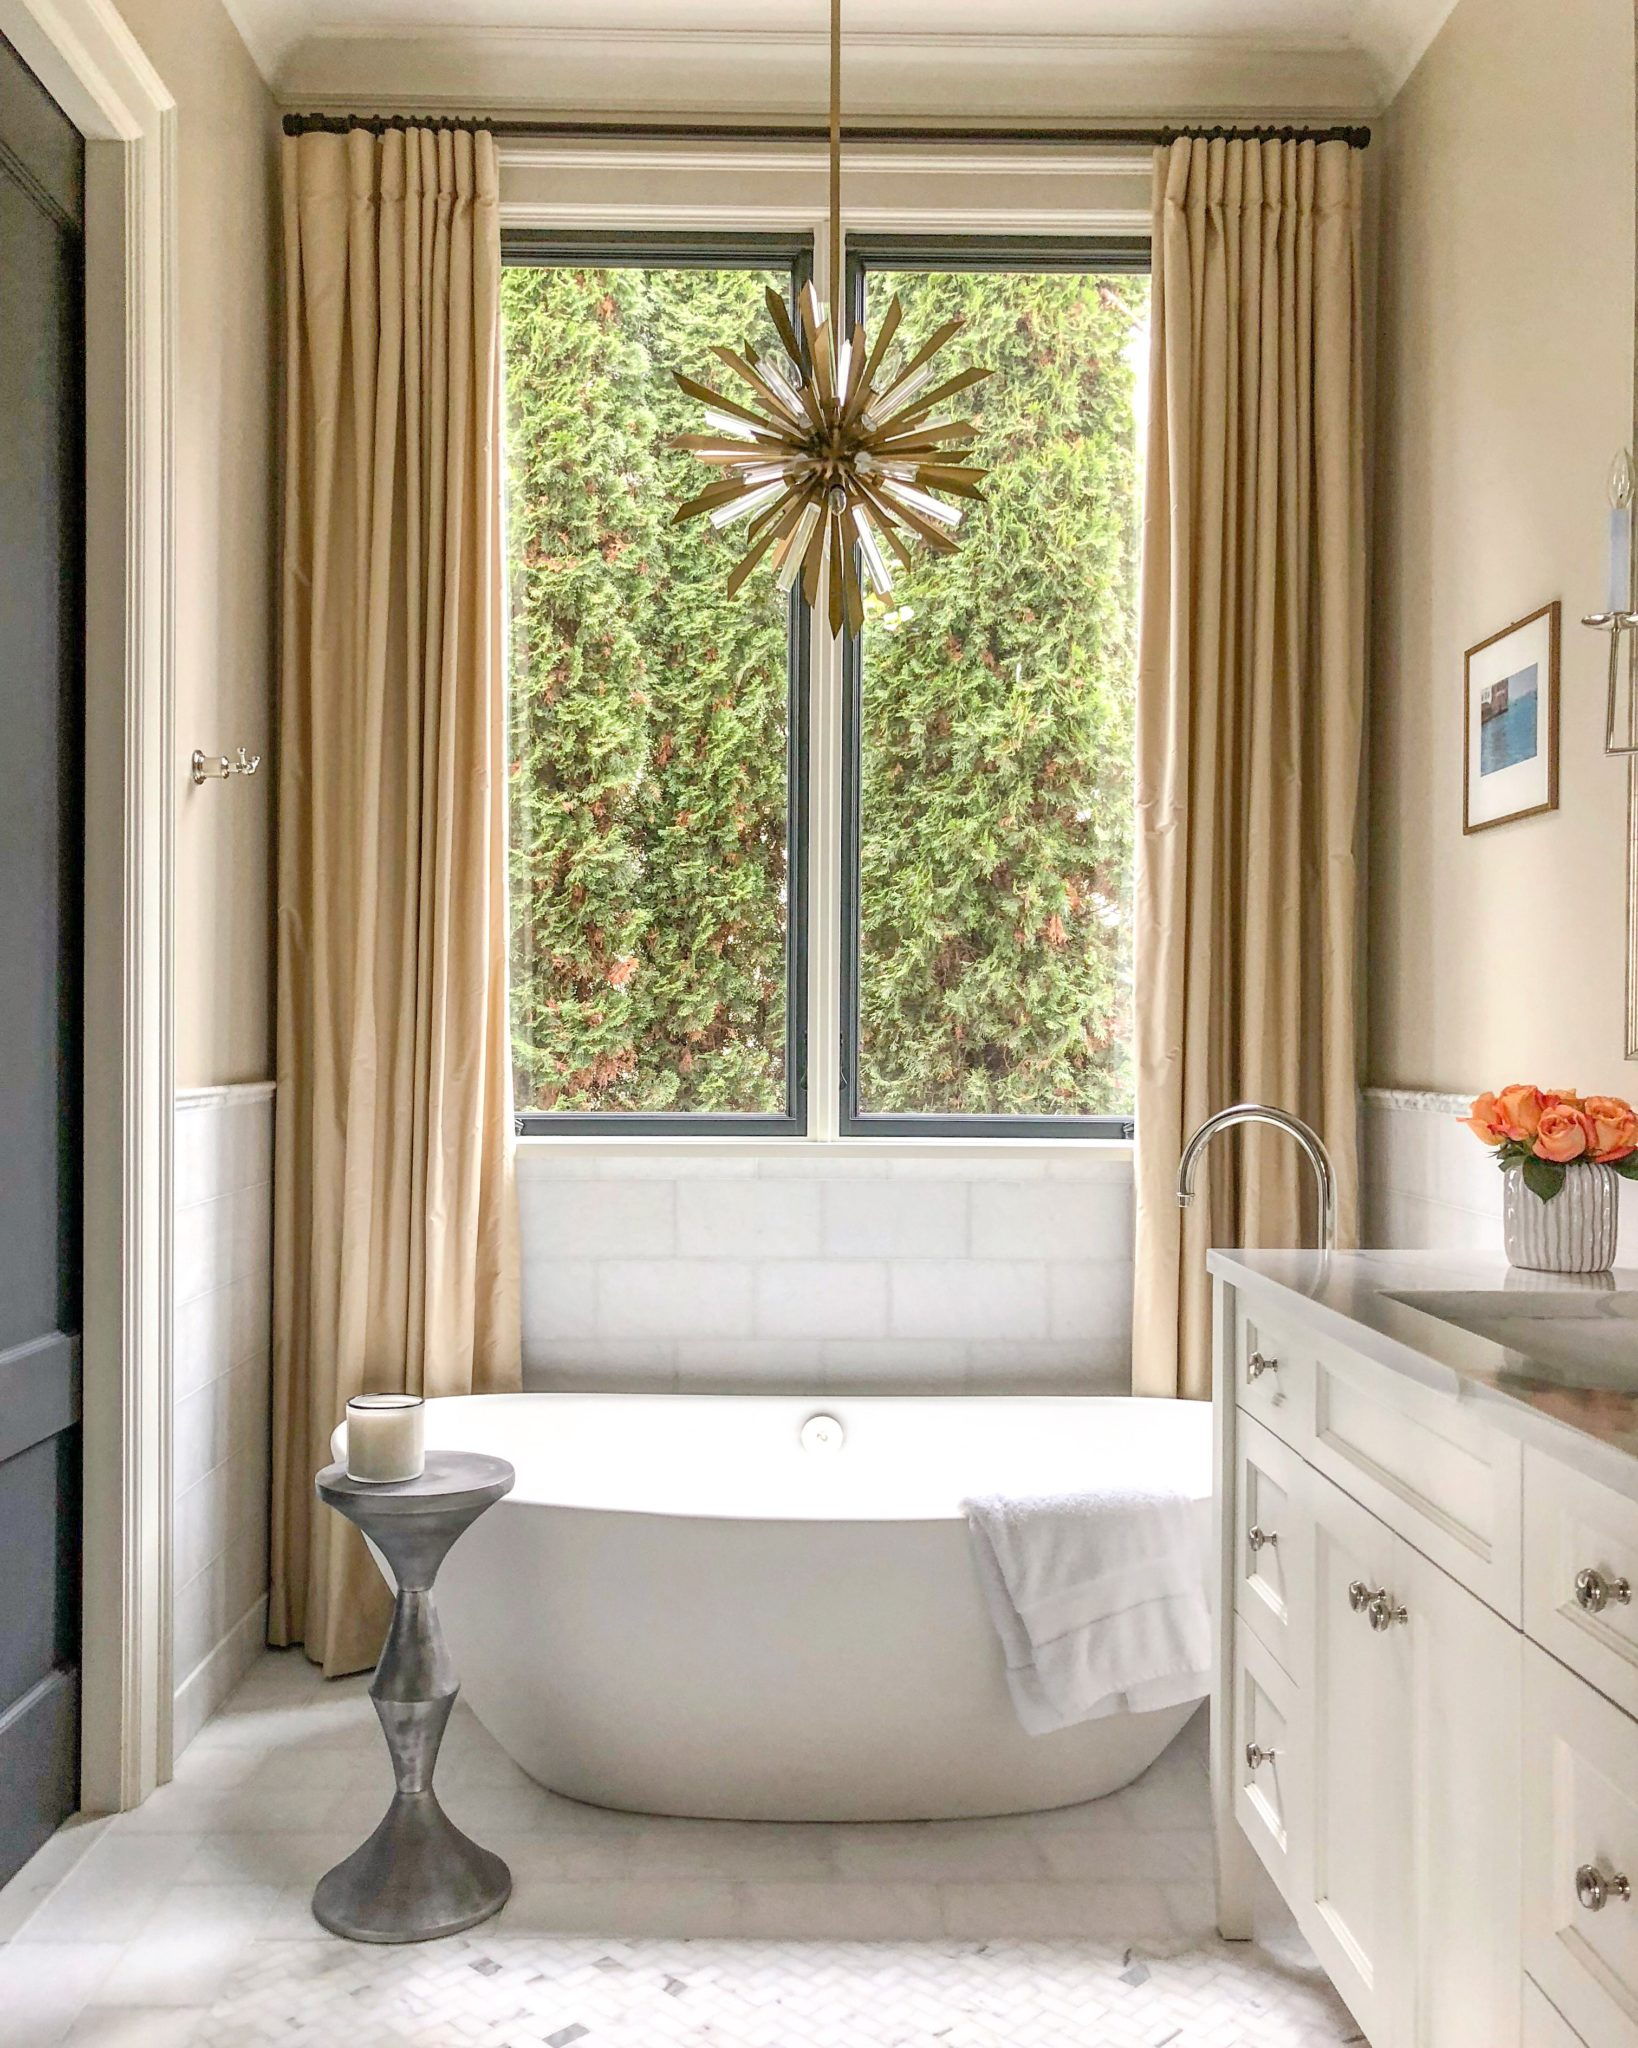 Mercer Island Marble Bath with Freestanding Tub, Black Doors, Marble Counters by LeeAnn Baker Interiors Ltd.